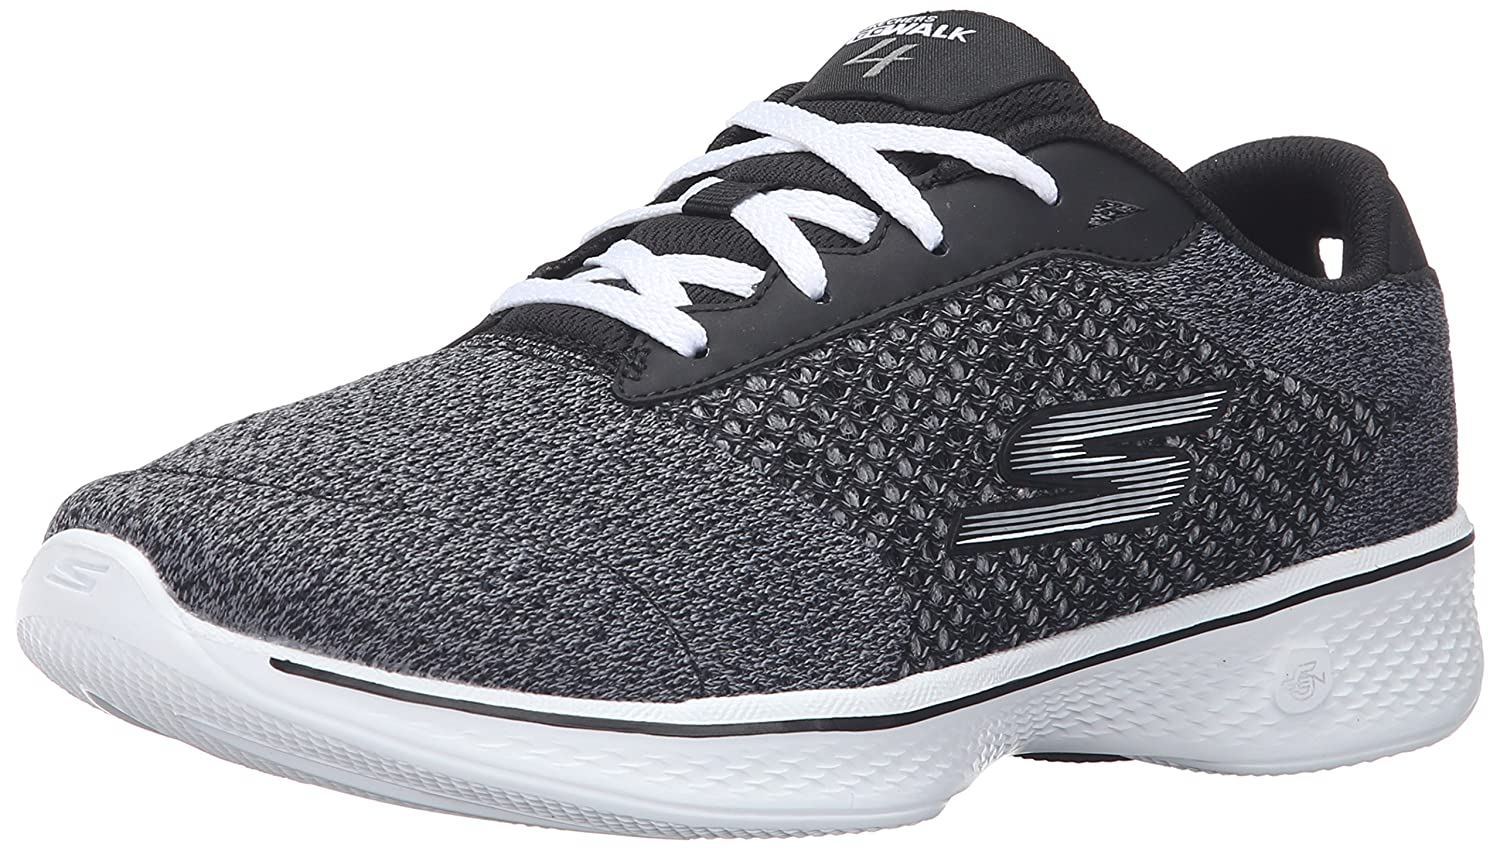 Skechers Performance Women's Go Walk 4 Exceed Lace-up Sneaker B01AH0743I 9.5 B(M) US|Black/White